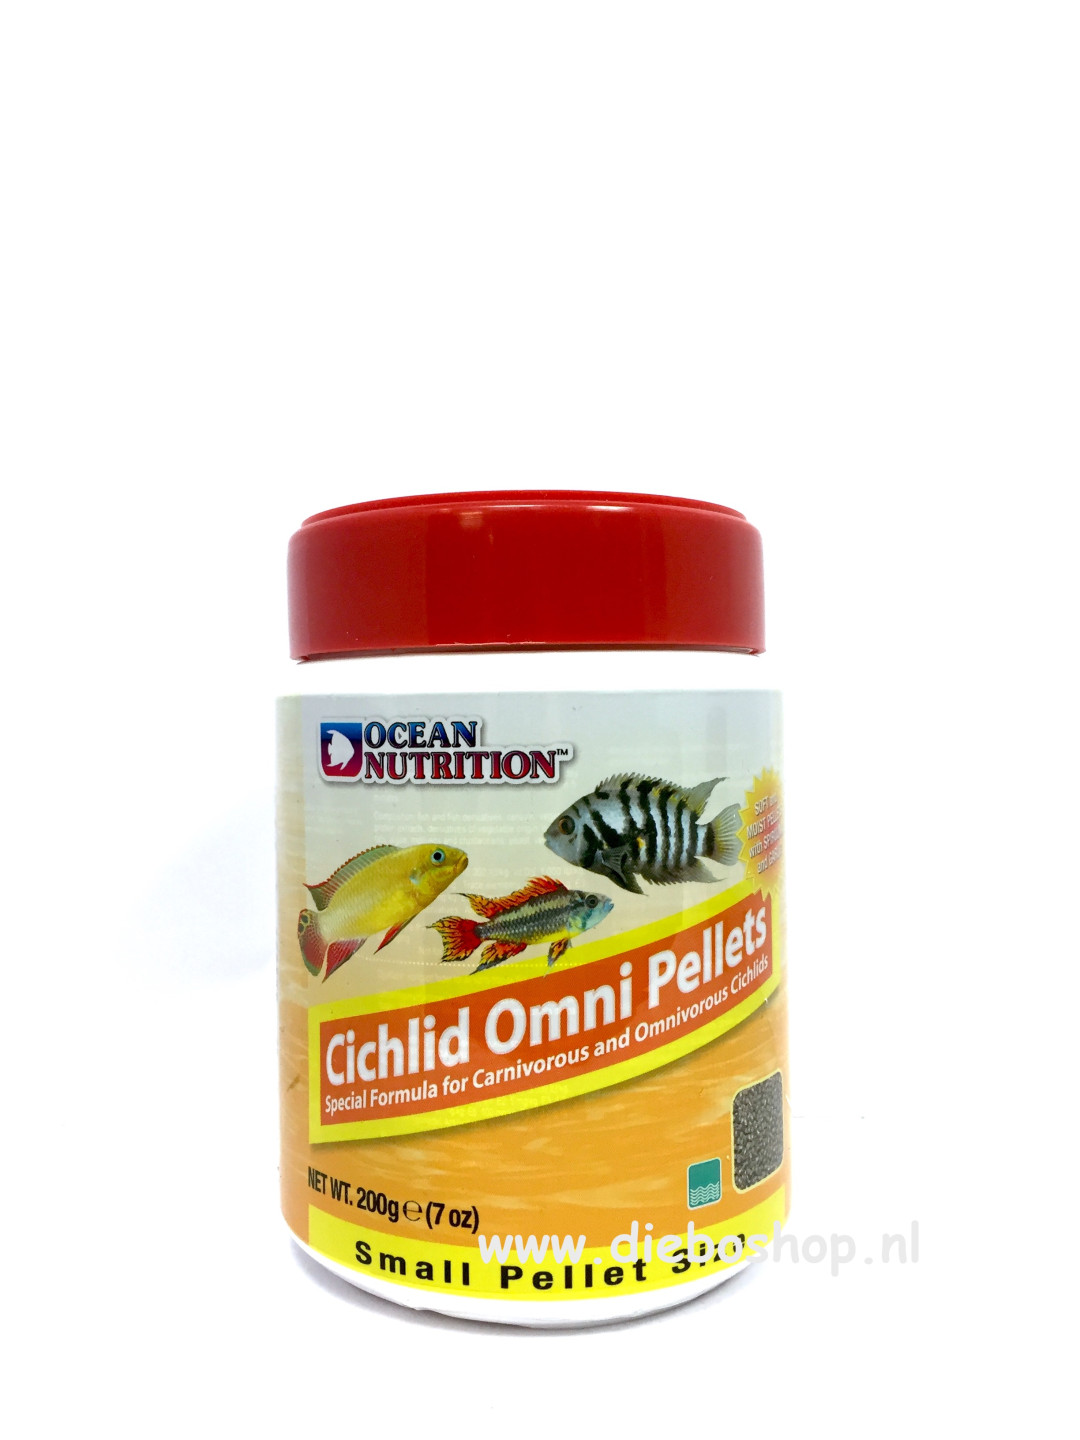 On Cichlid Omni Pellets Small